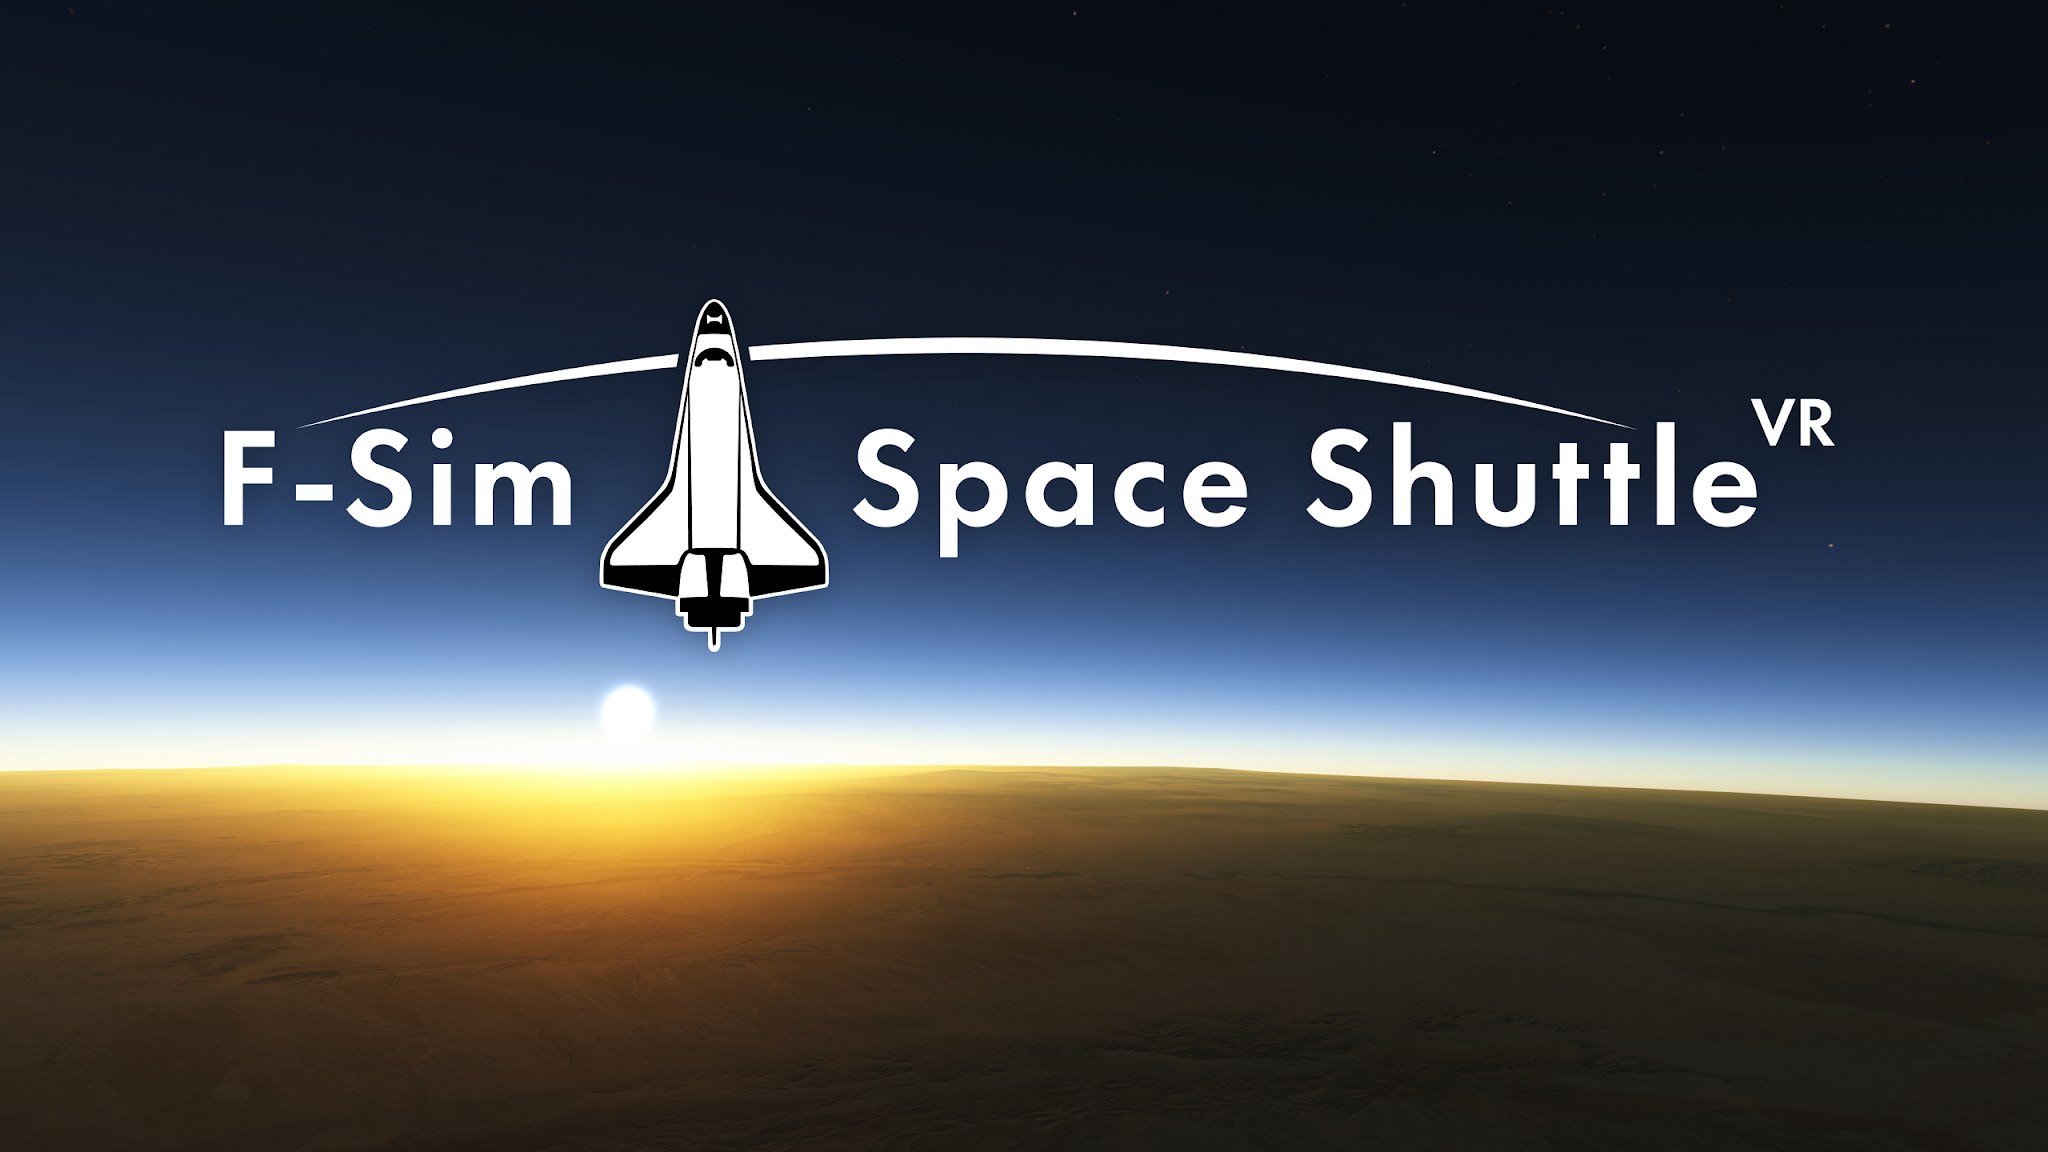 F-Sim | Space Shuttle VR Out on Oculus Go Today